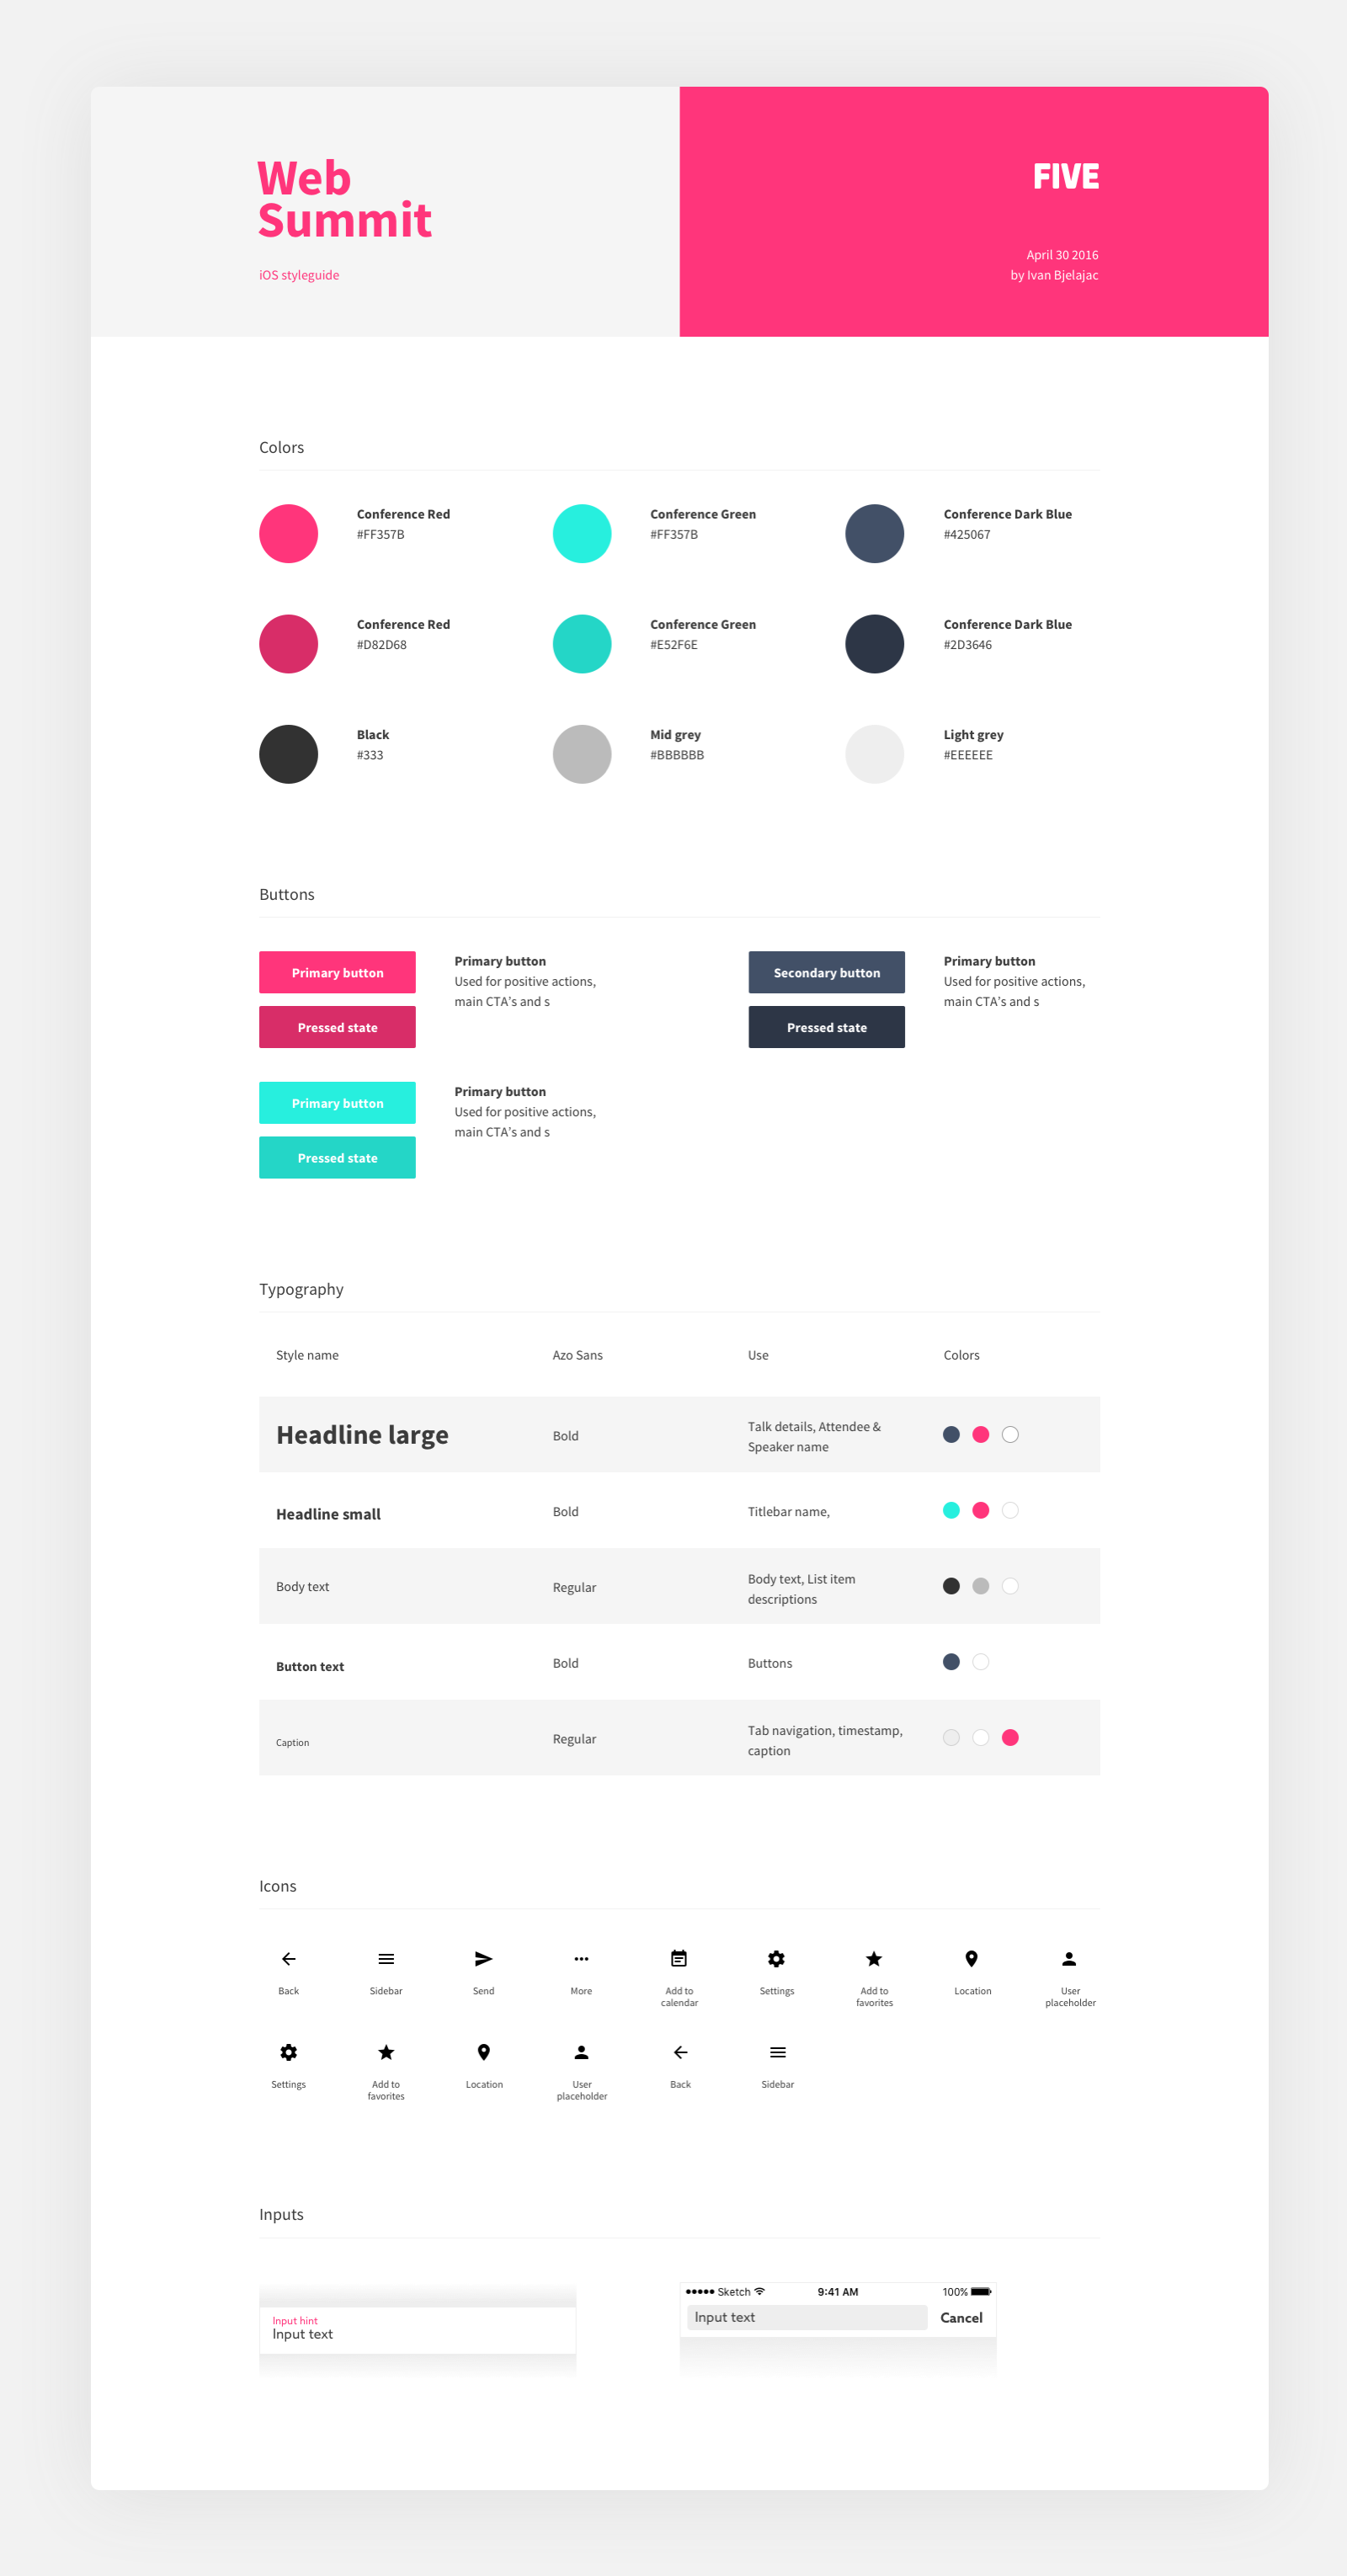 Free Styleguide Templates For Your Web Projects